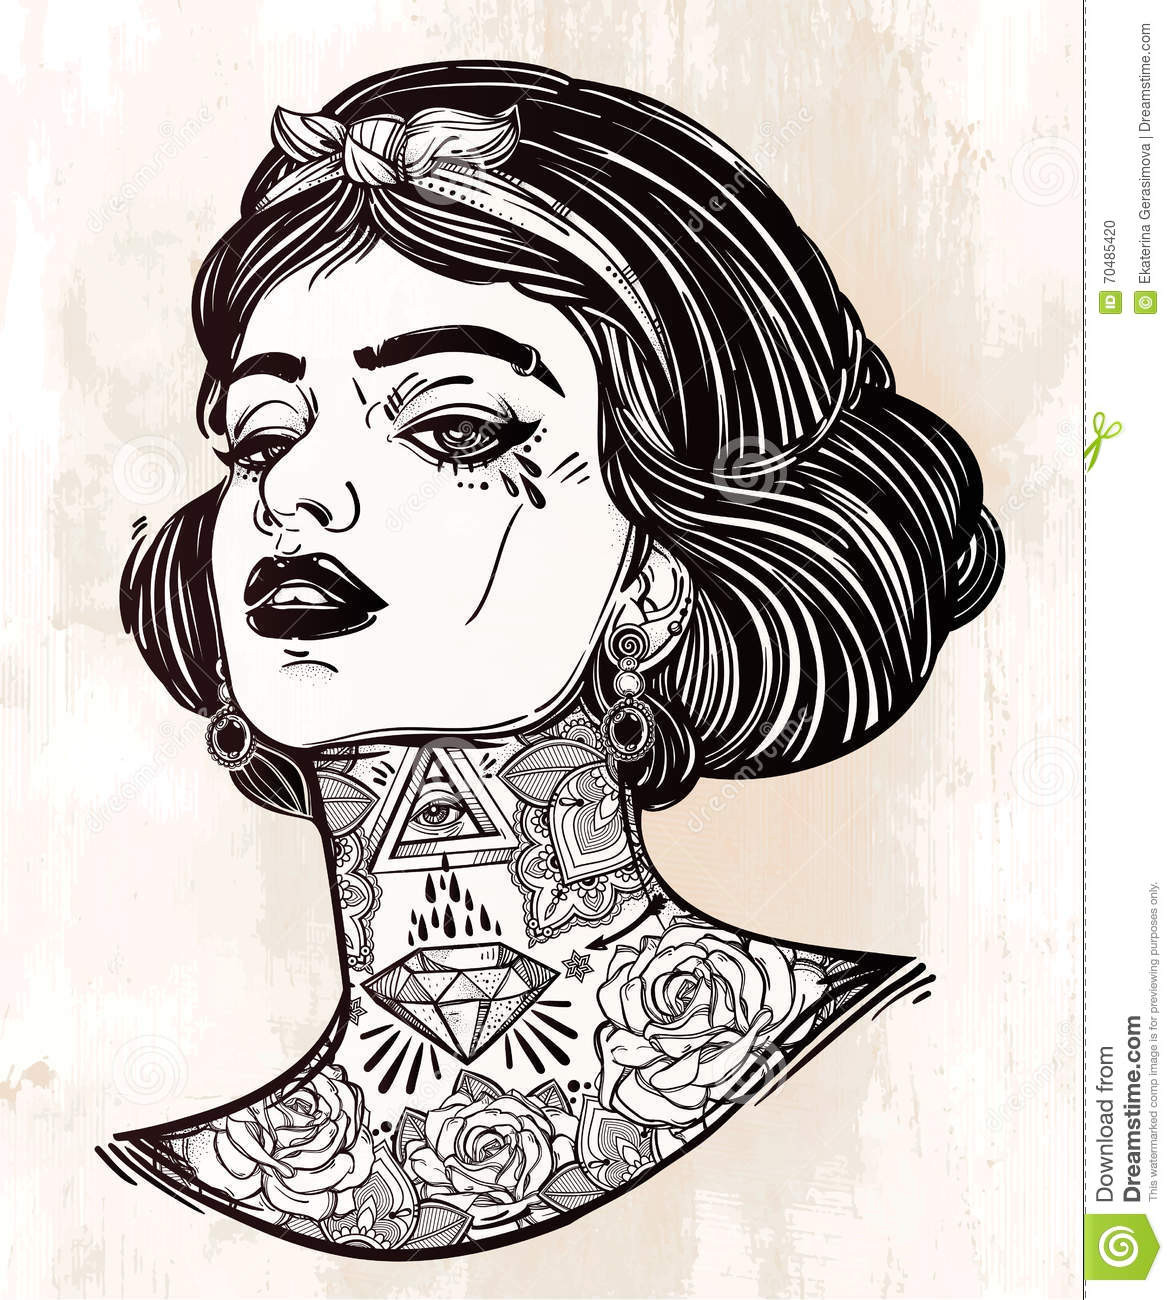 Tattoo Coloring Pages For Adults  Adult Coloring Vector Young Tattooed Girl Stock Vector